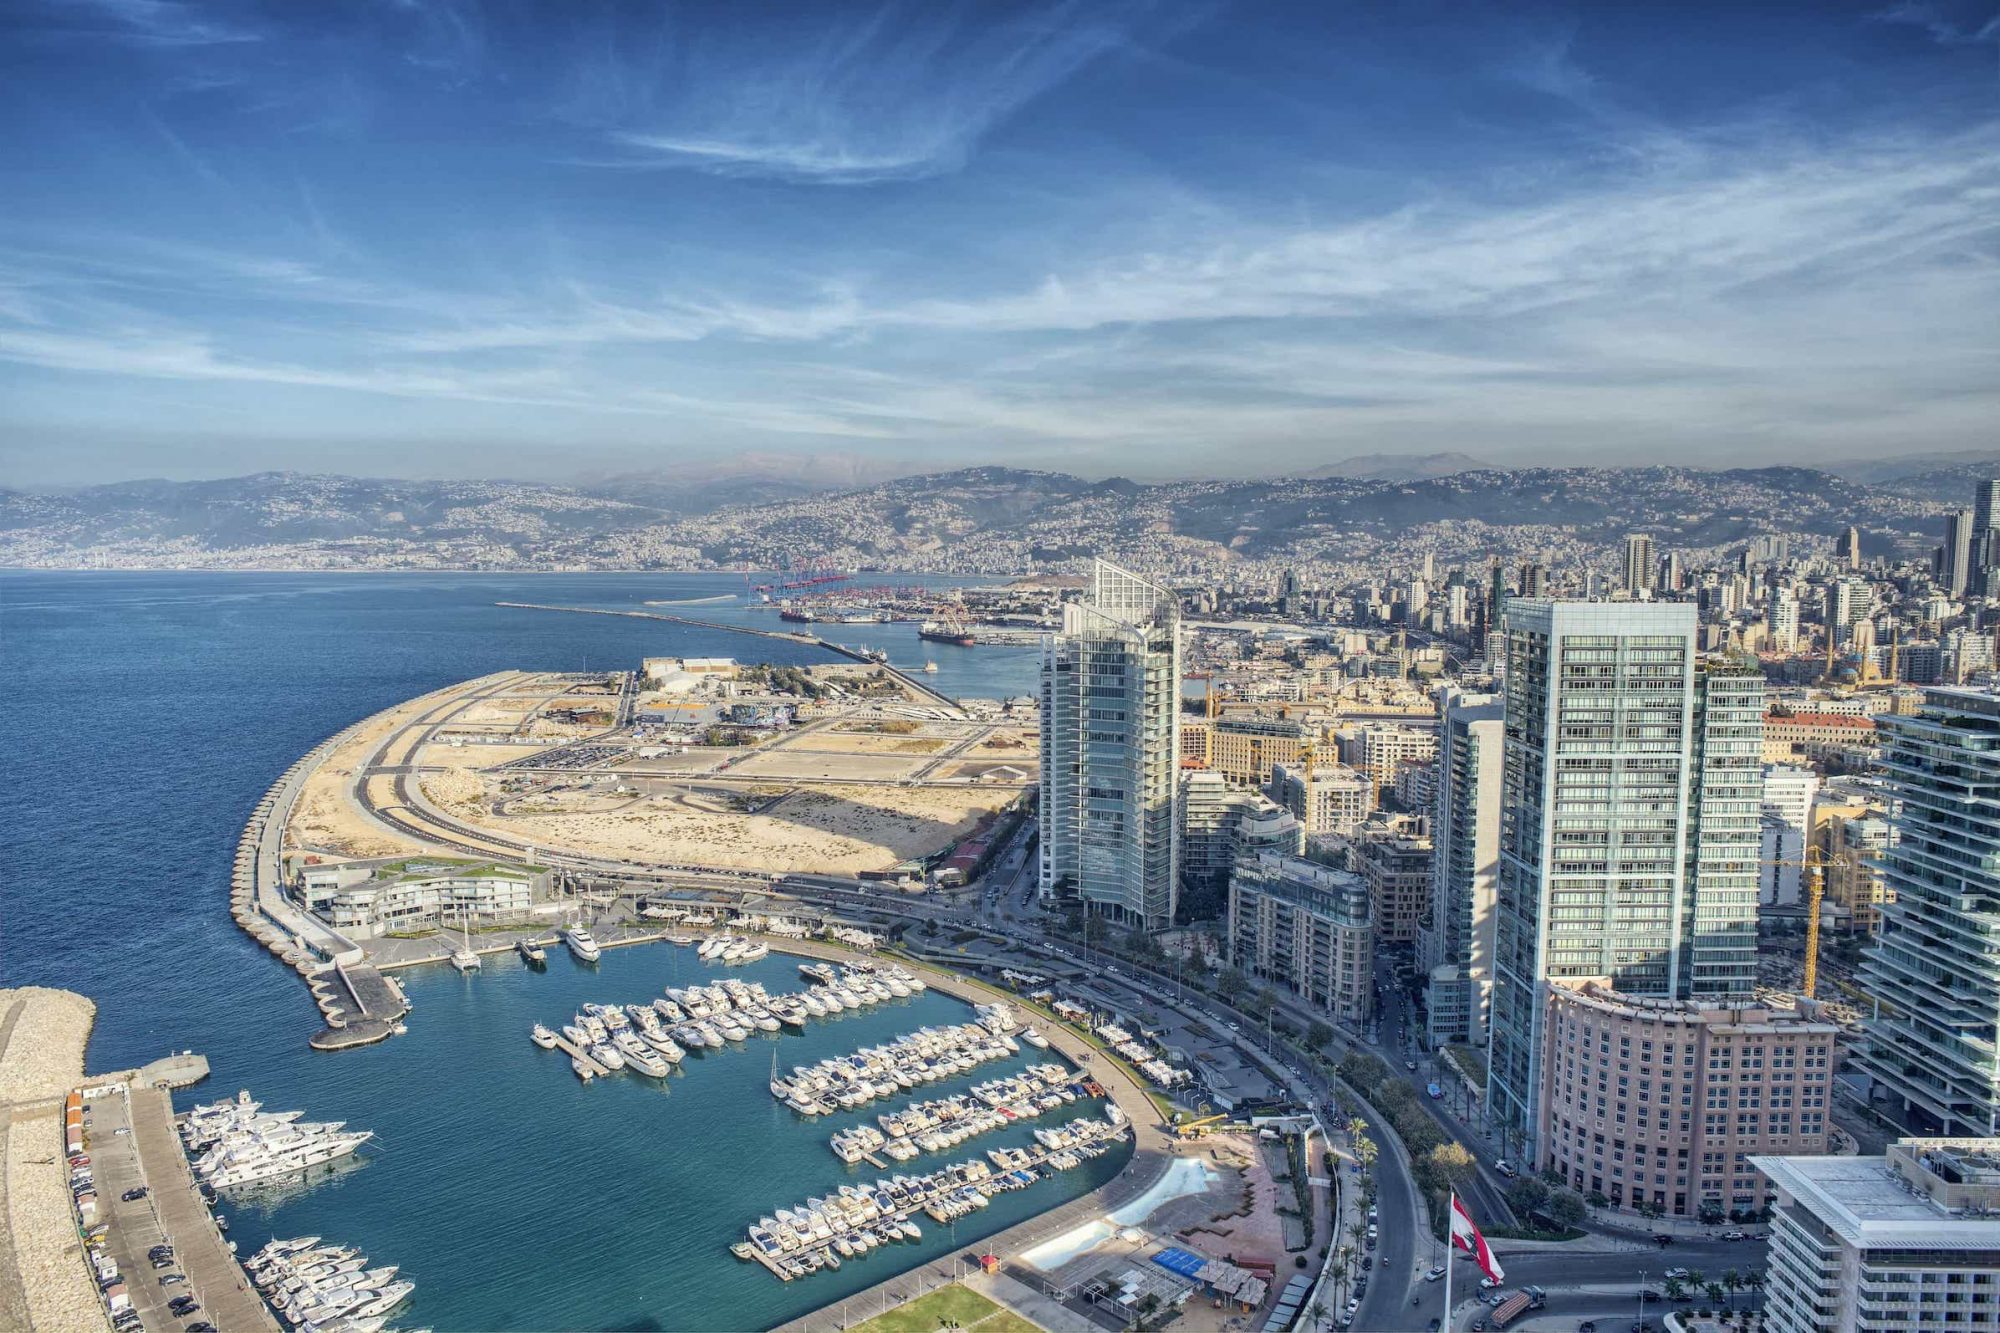 Lebanese tech accelerator Speed receives new funding from Central Bank of Lebanon